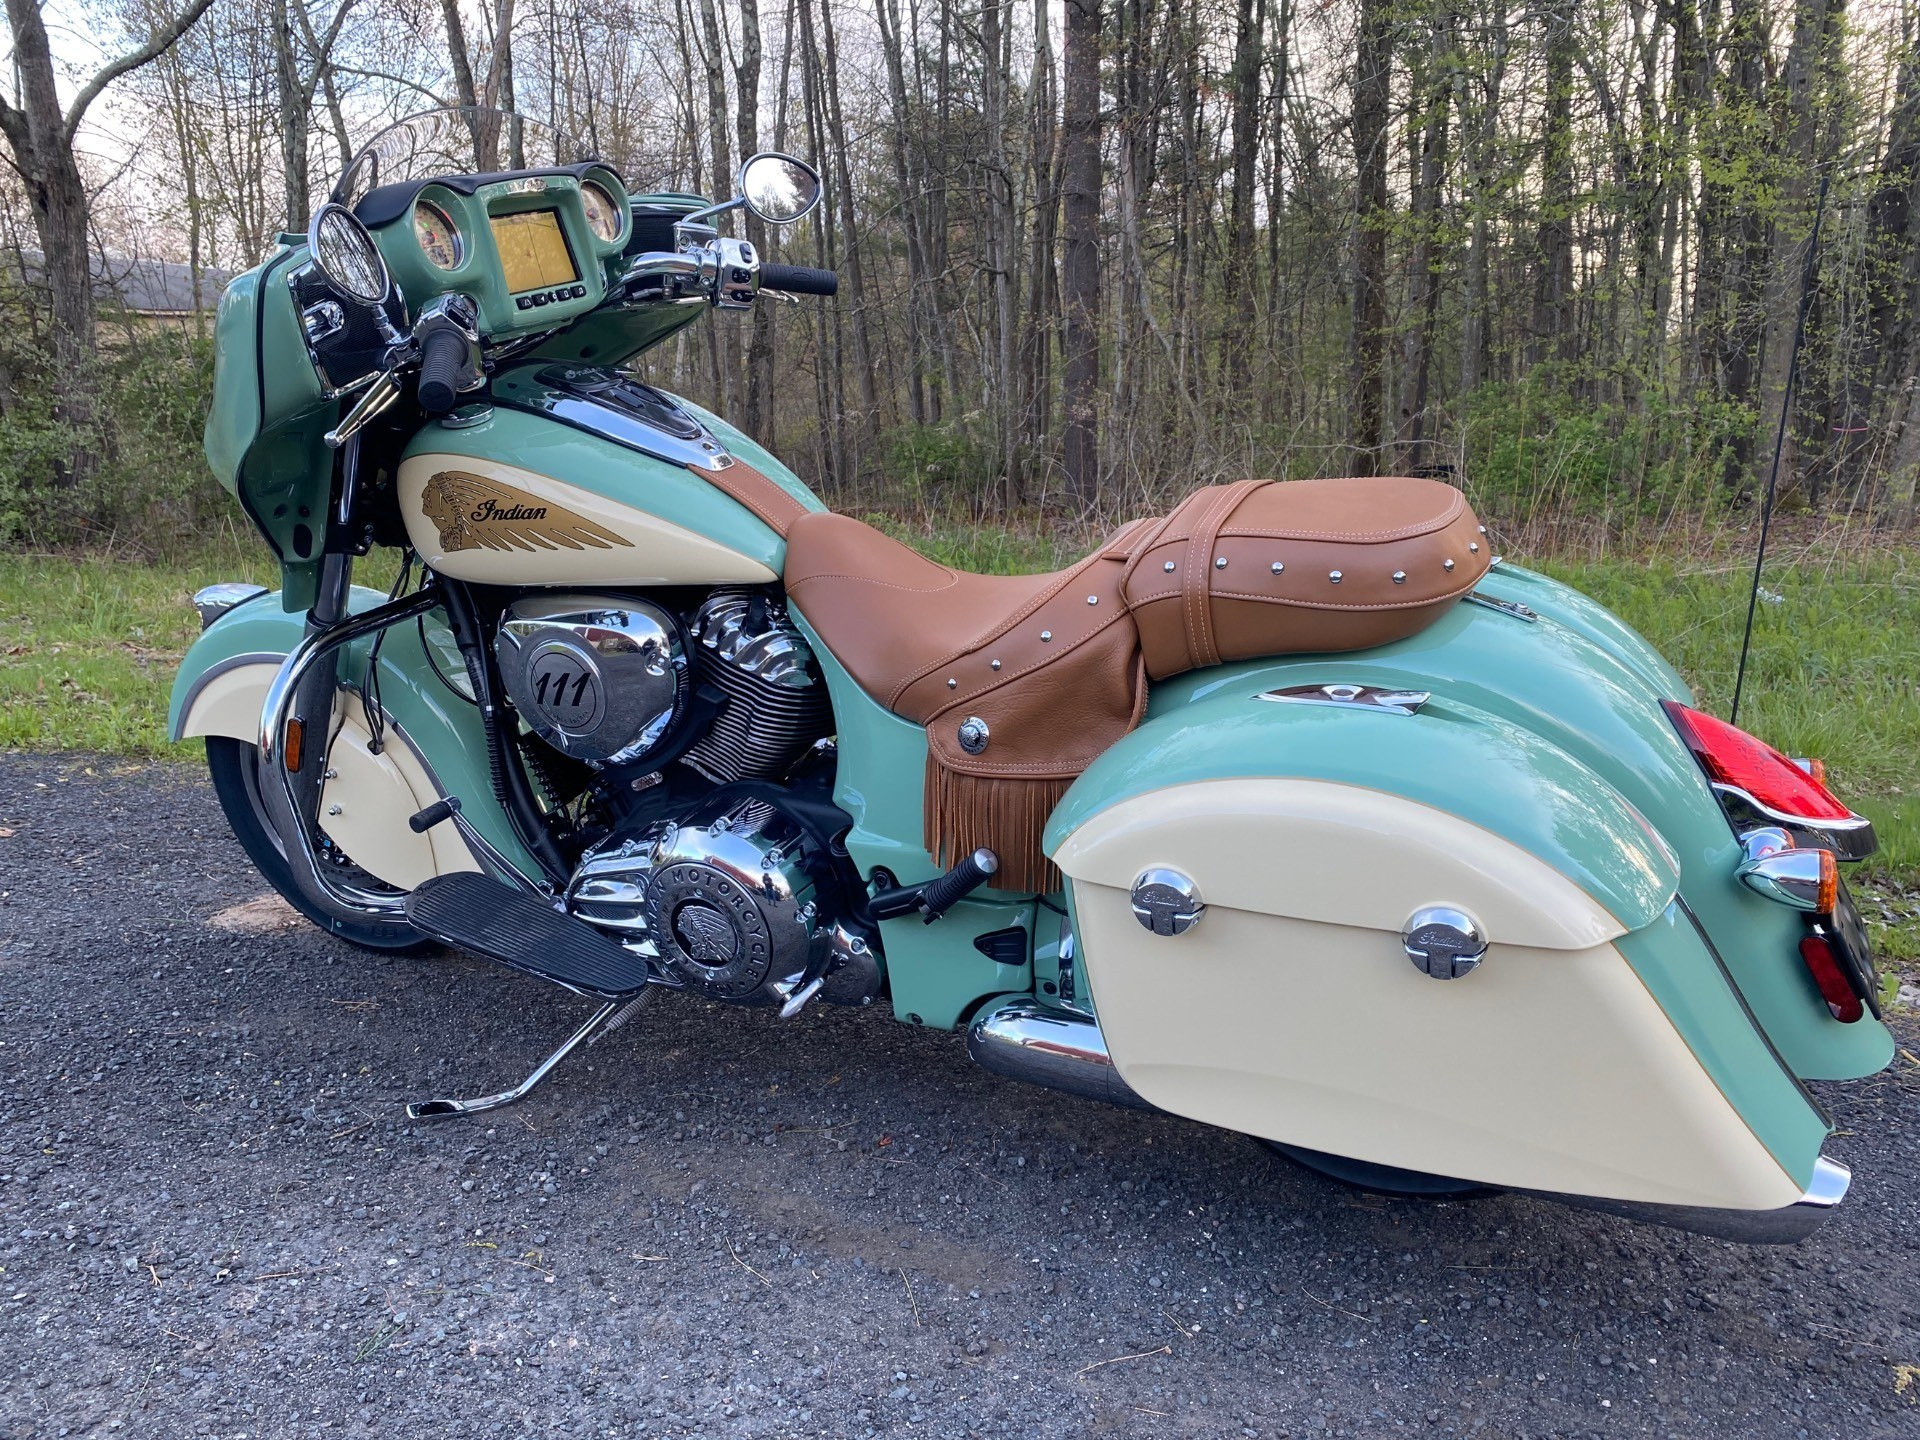 2020 Indian Chieftain® Classic Icon Series in Westfield, Massachusetts - Photo 13